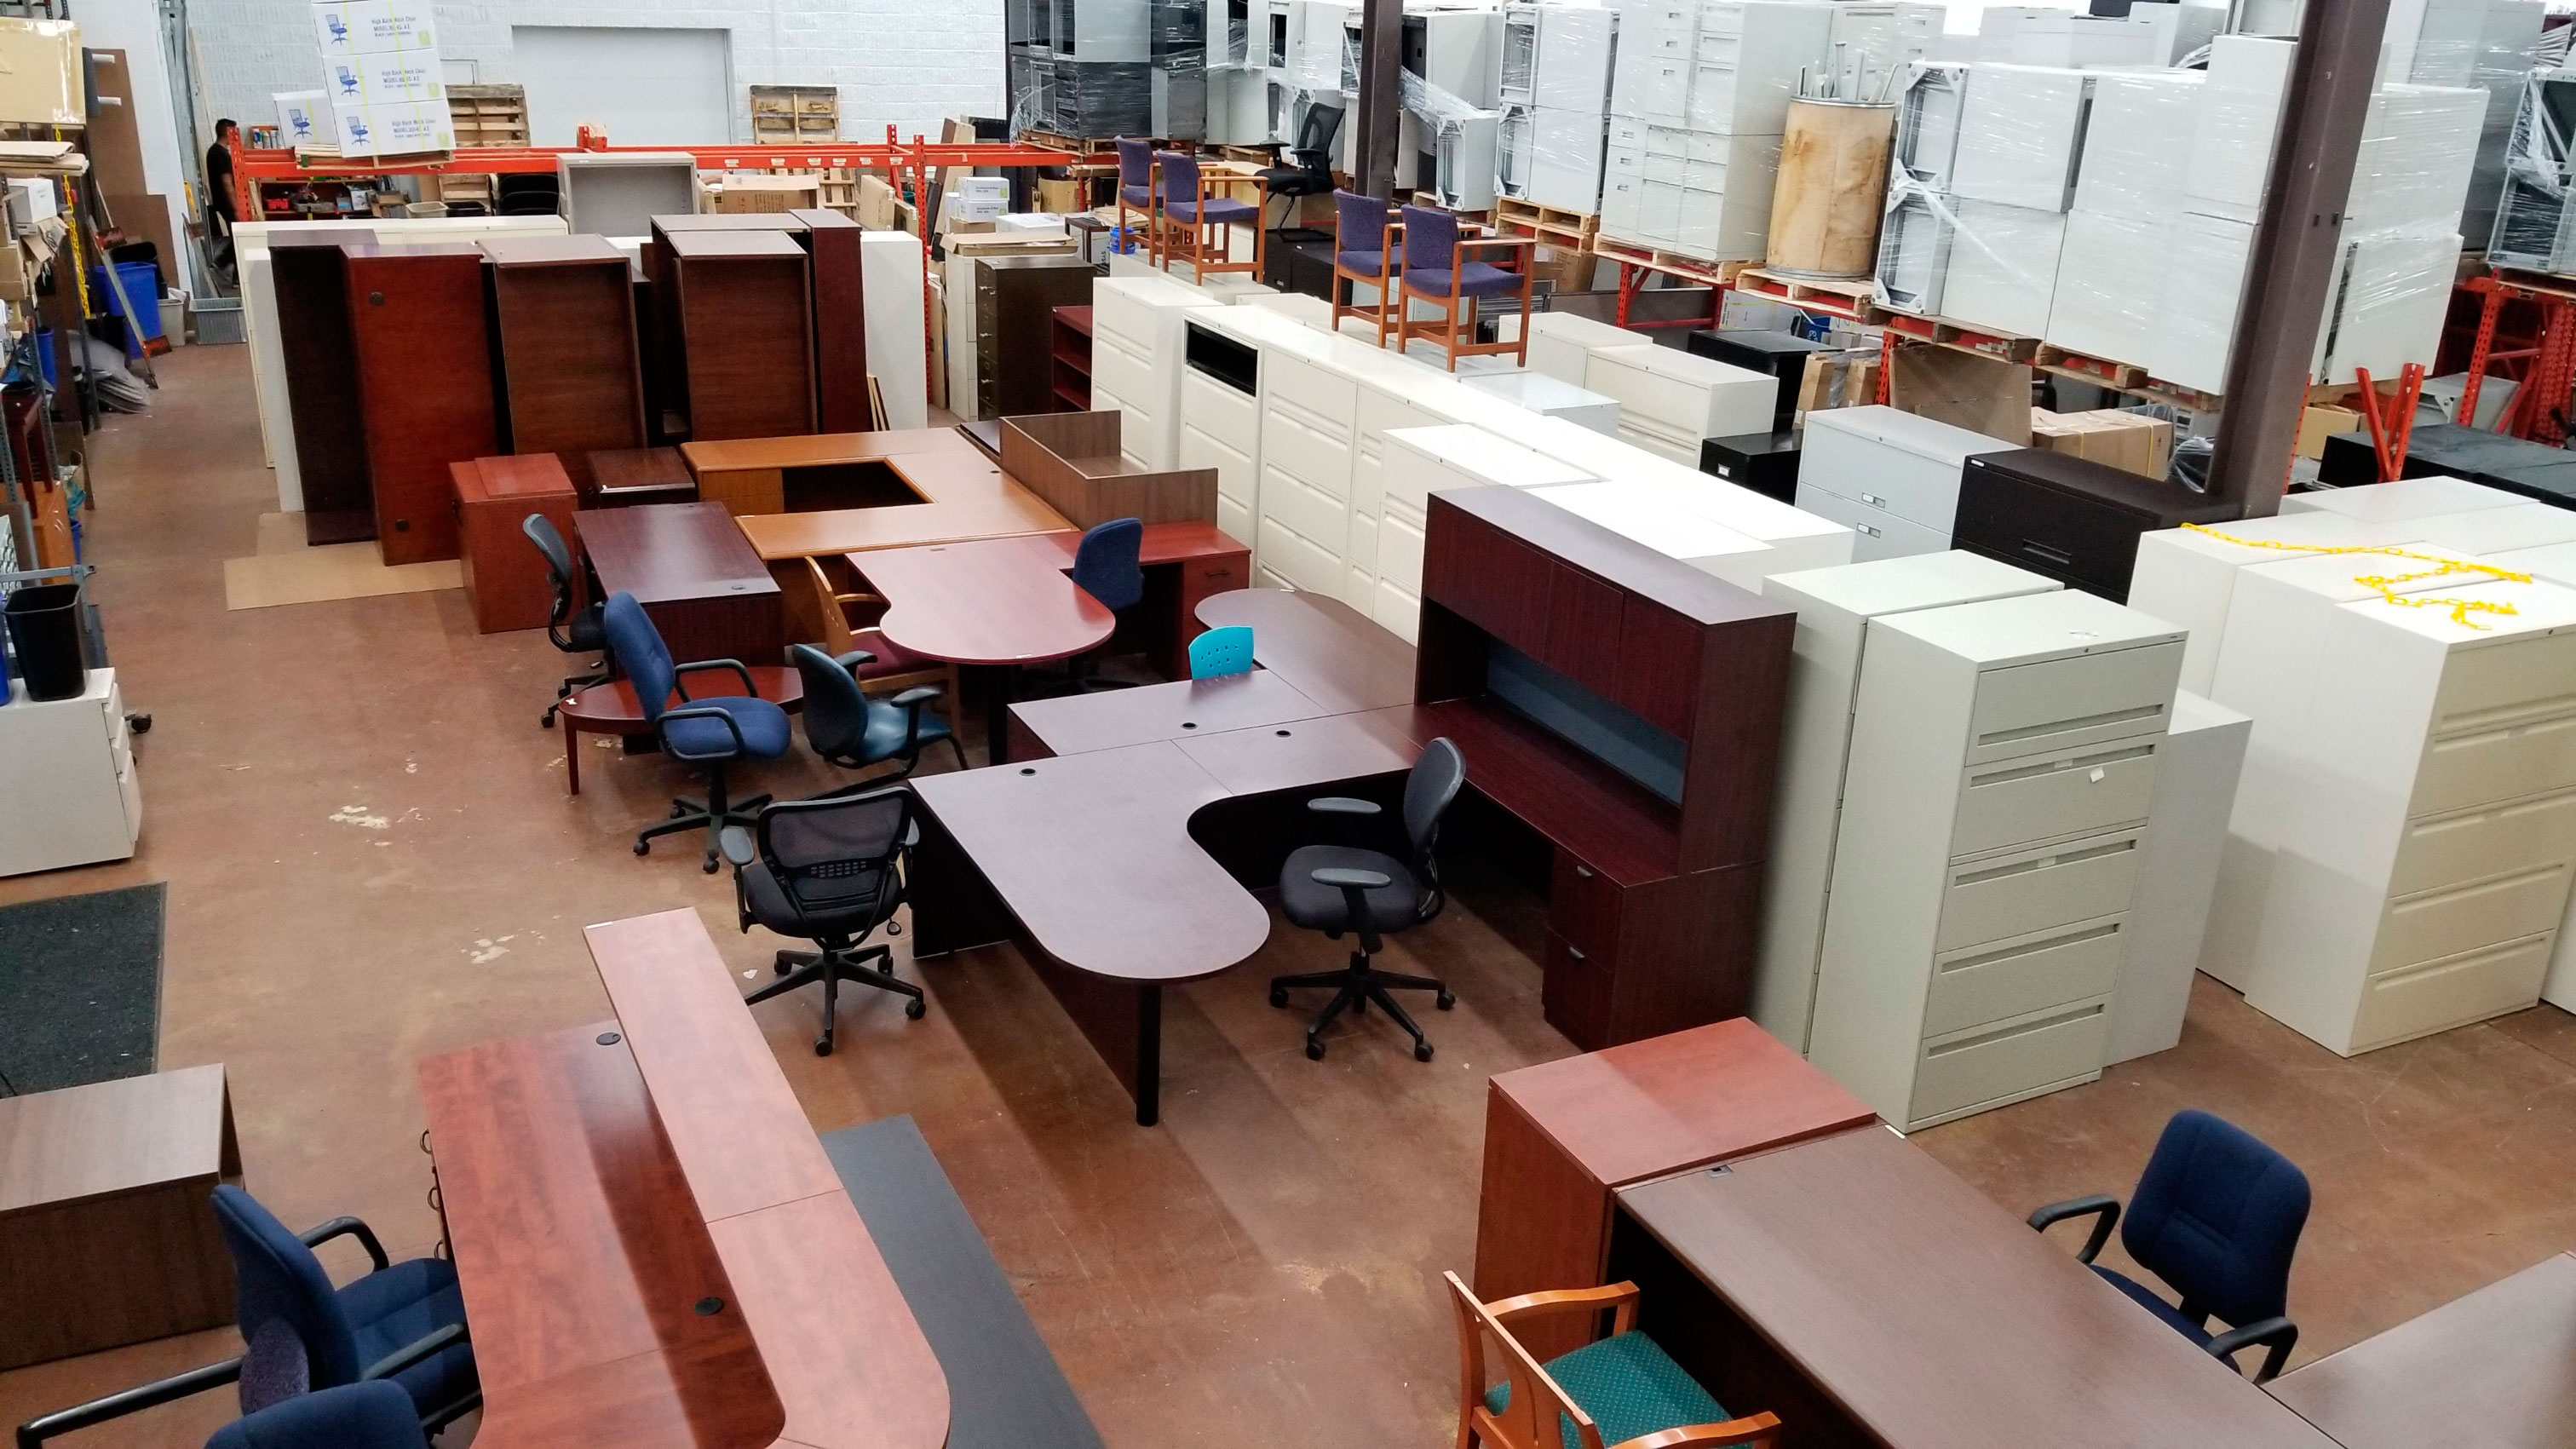 New And Used Office Furniture | Minneapolis St. Paul intended for Used Office Furniture Minneapolis